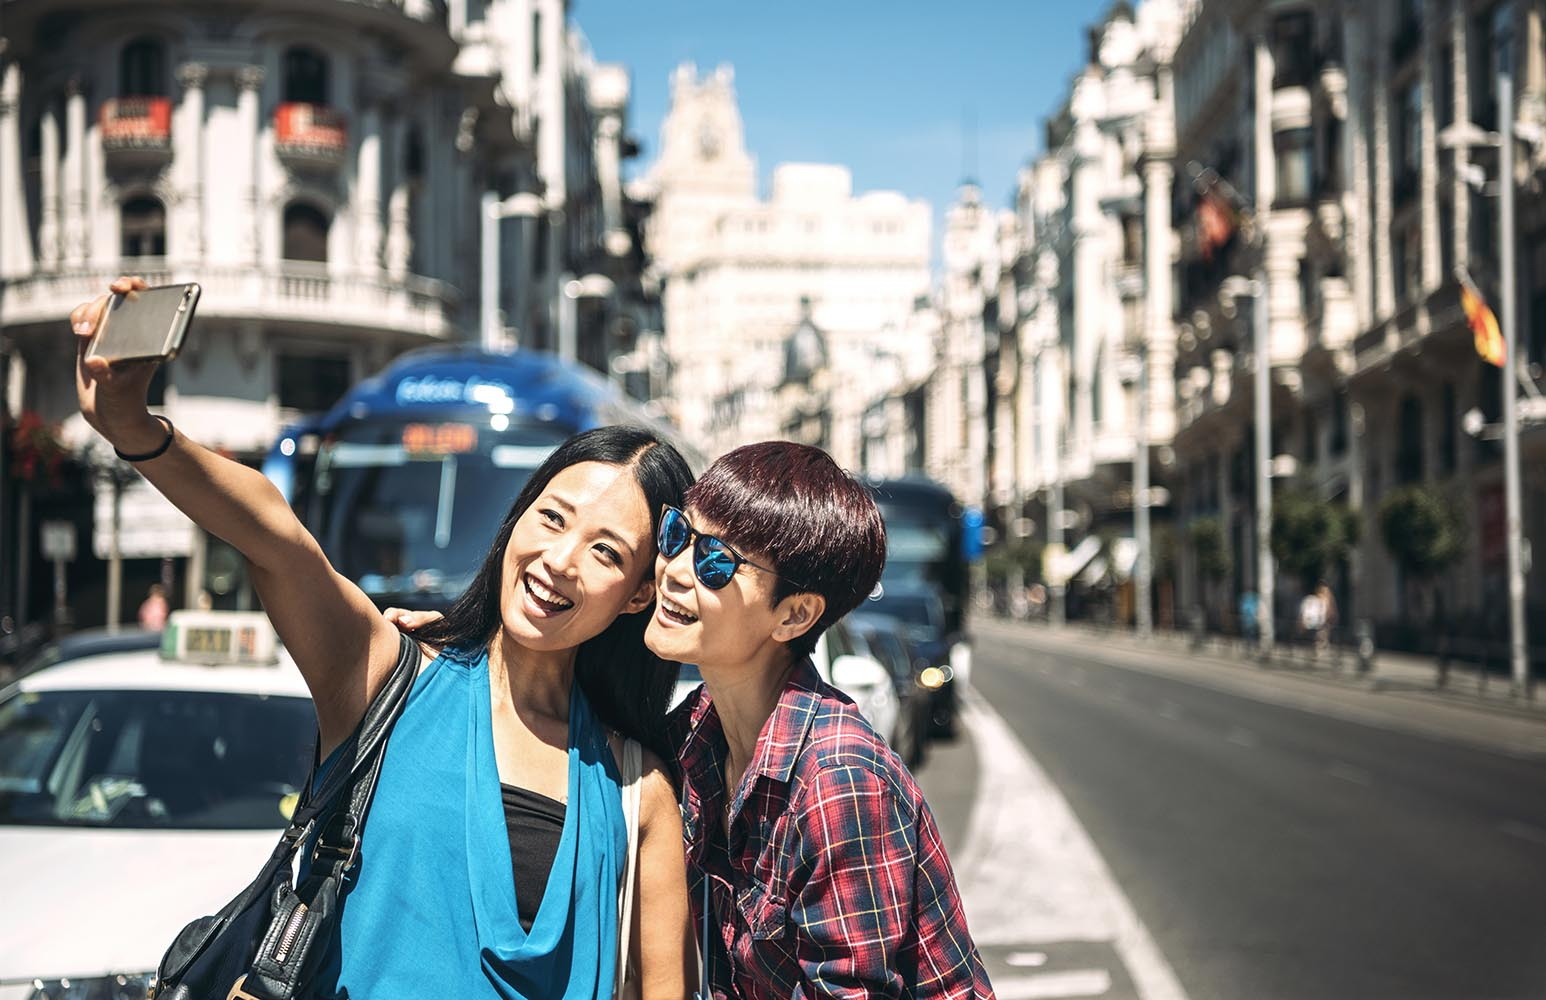 Tourists taking selfie on street